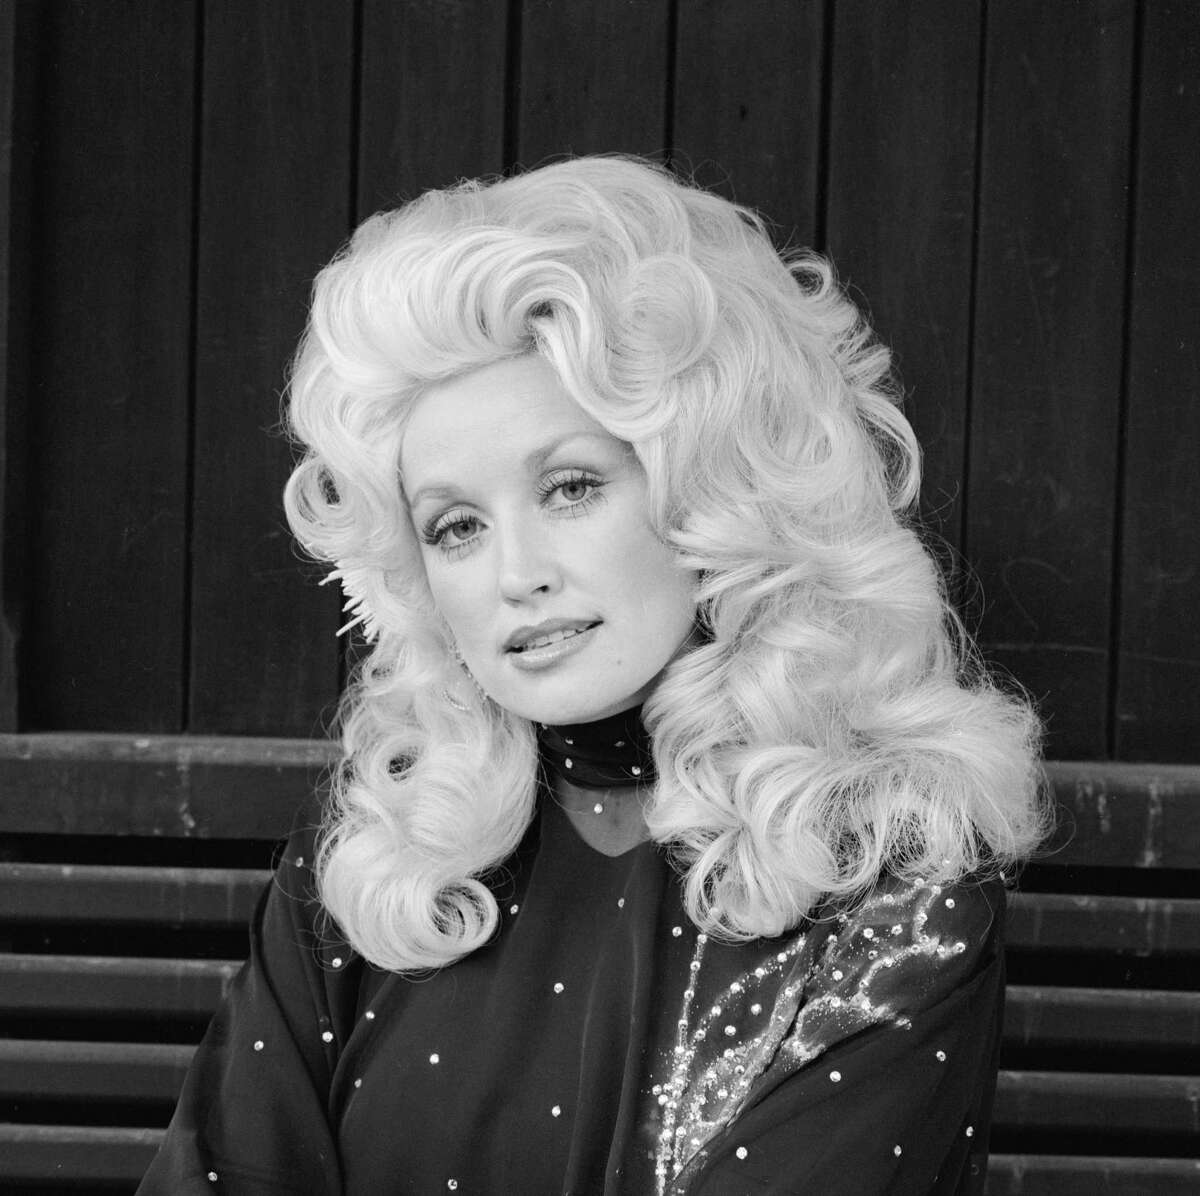 American actress and country singer Dolly Parton in London, 1977.